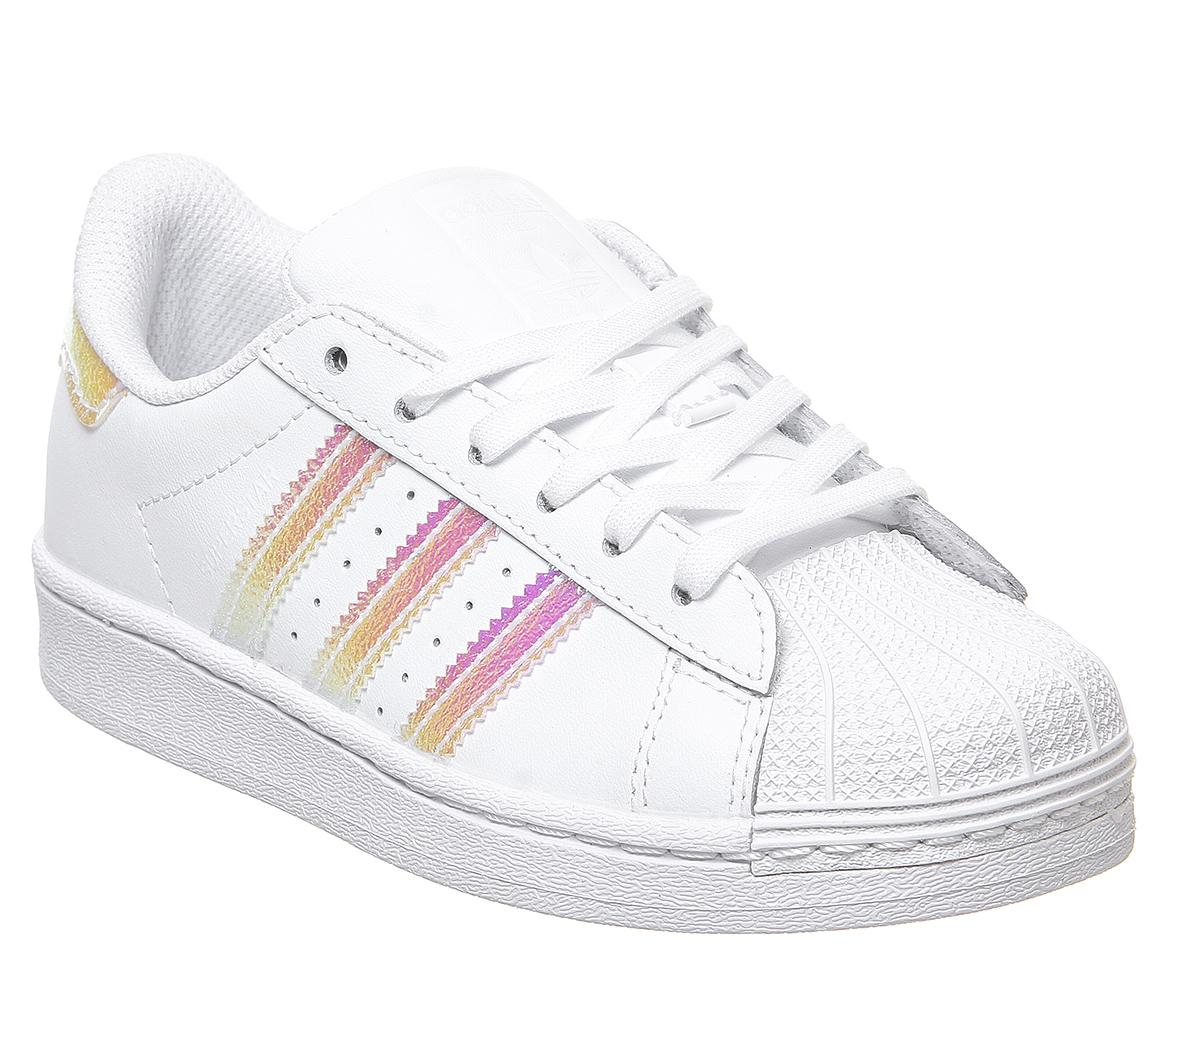 adidas superstar iridescent uk